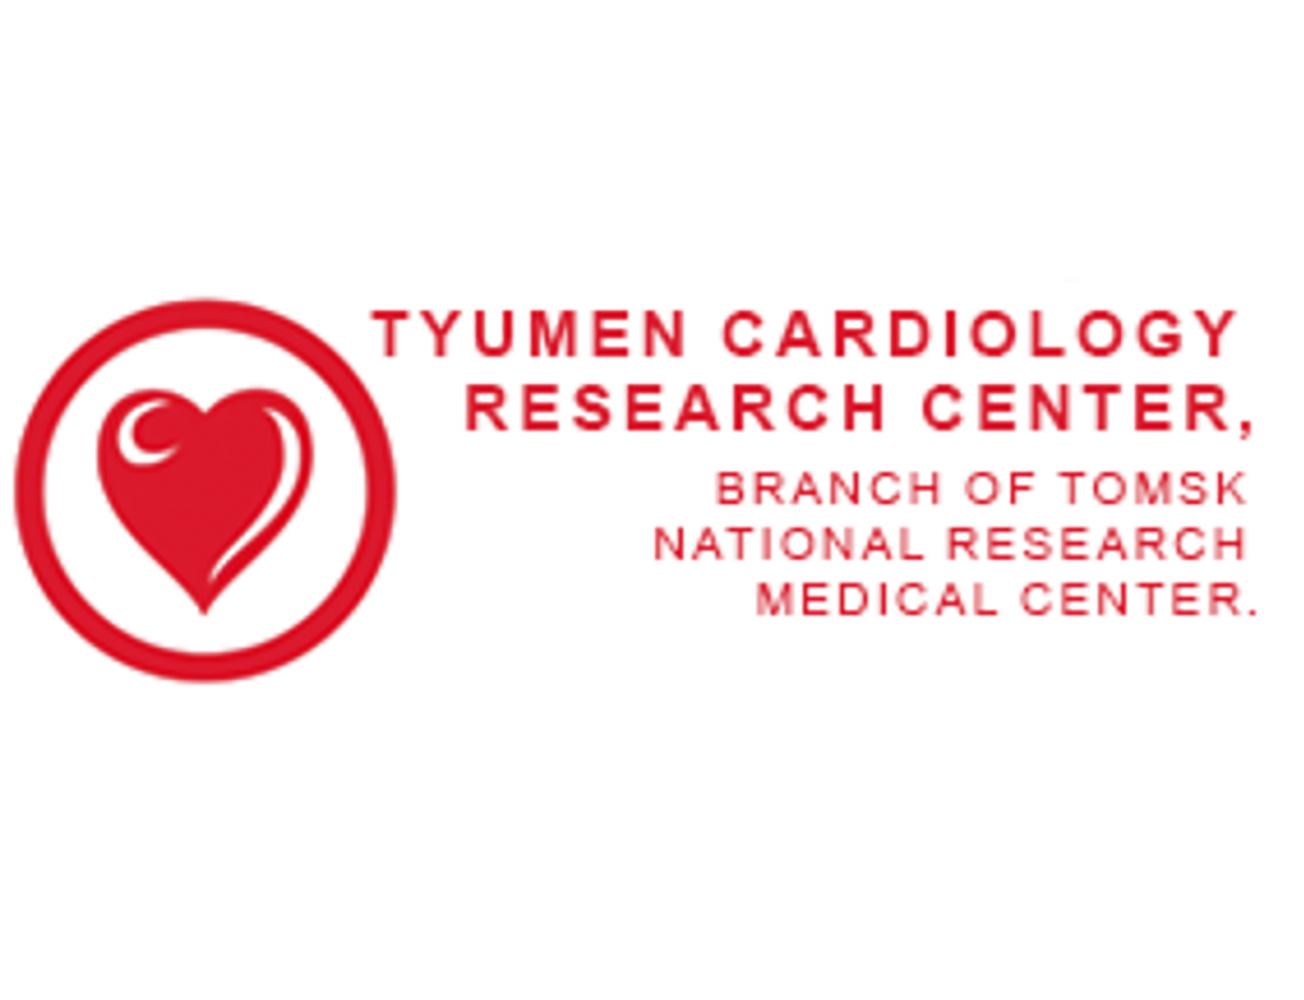 Open meeting of the Tyumen Regional Branch of the Russian Society of Cardiology